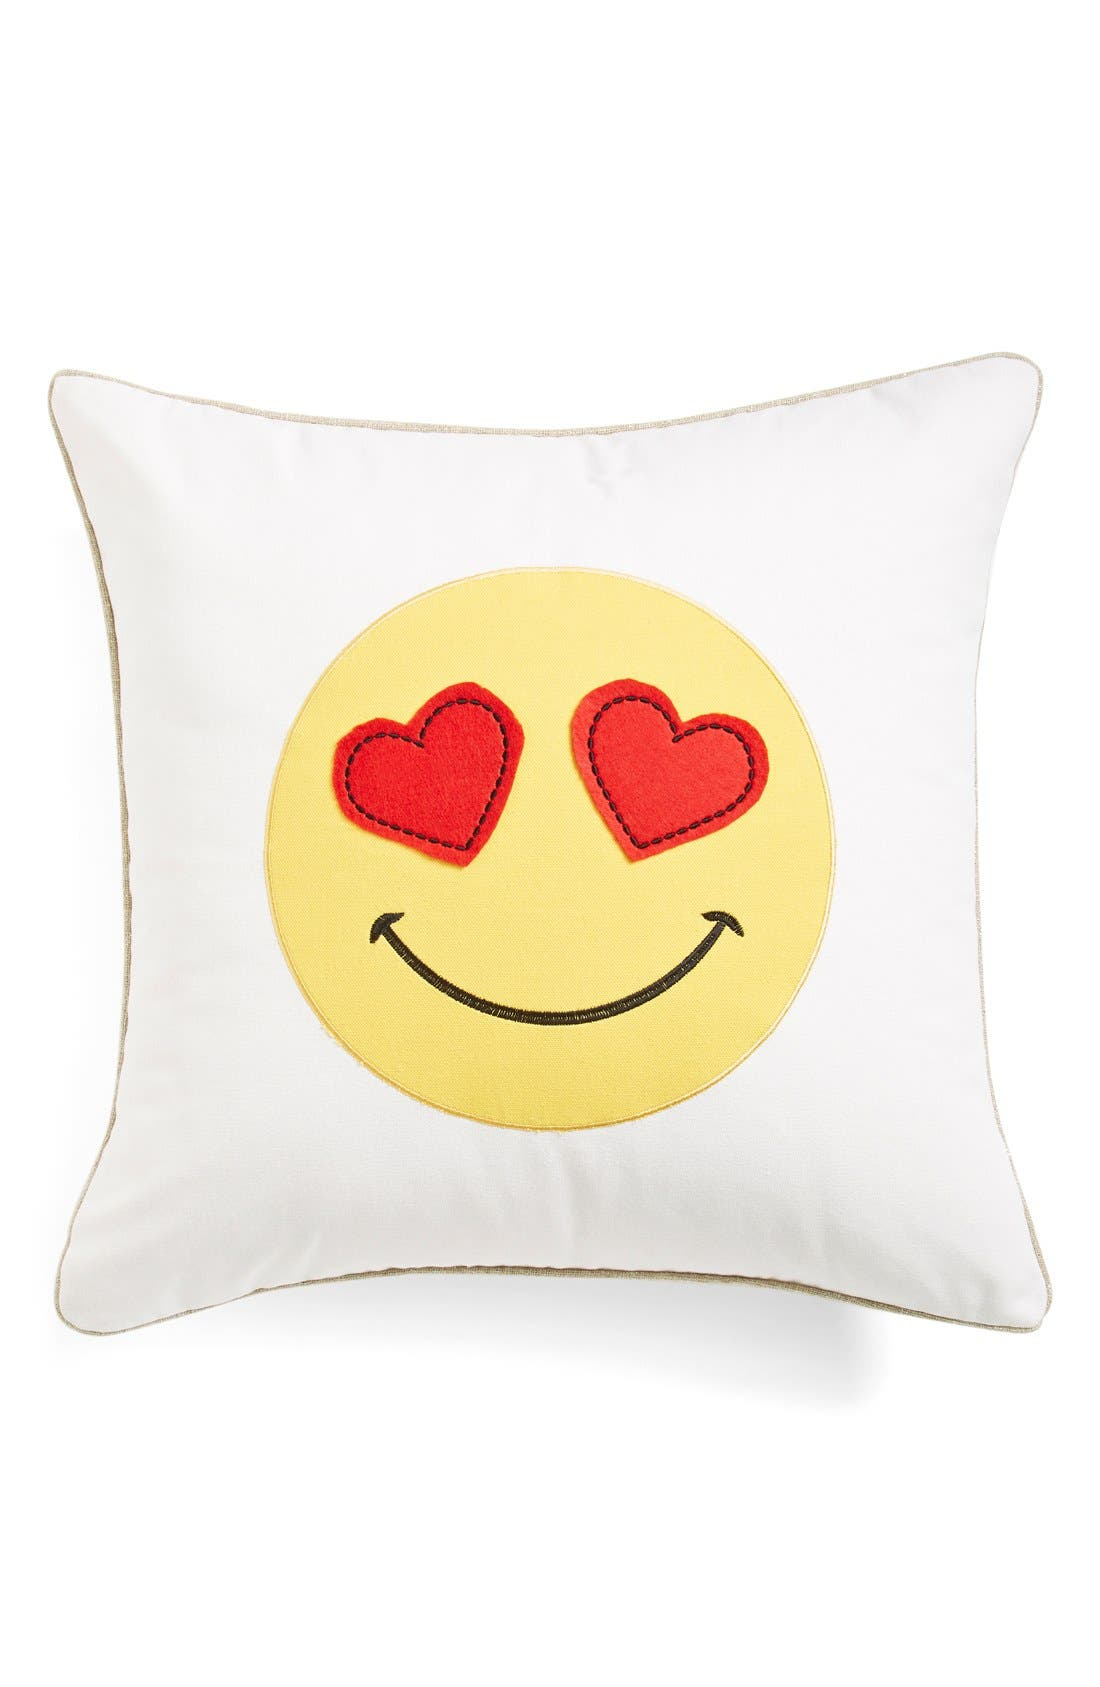 Main Image - Levtex 'Smiling Heart' Pillow